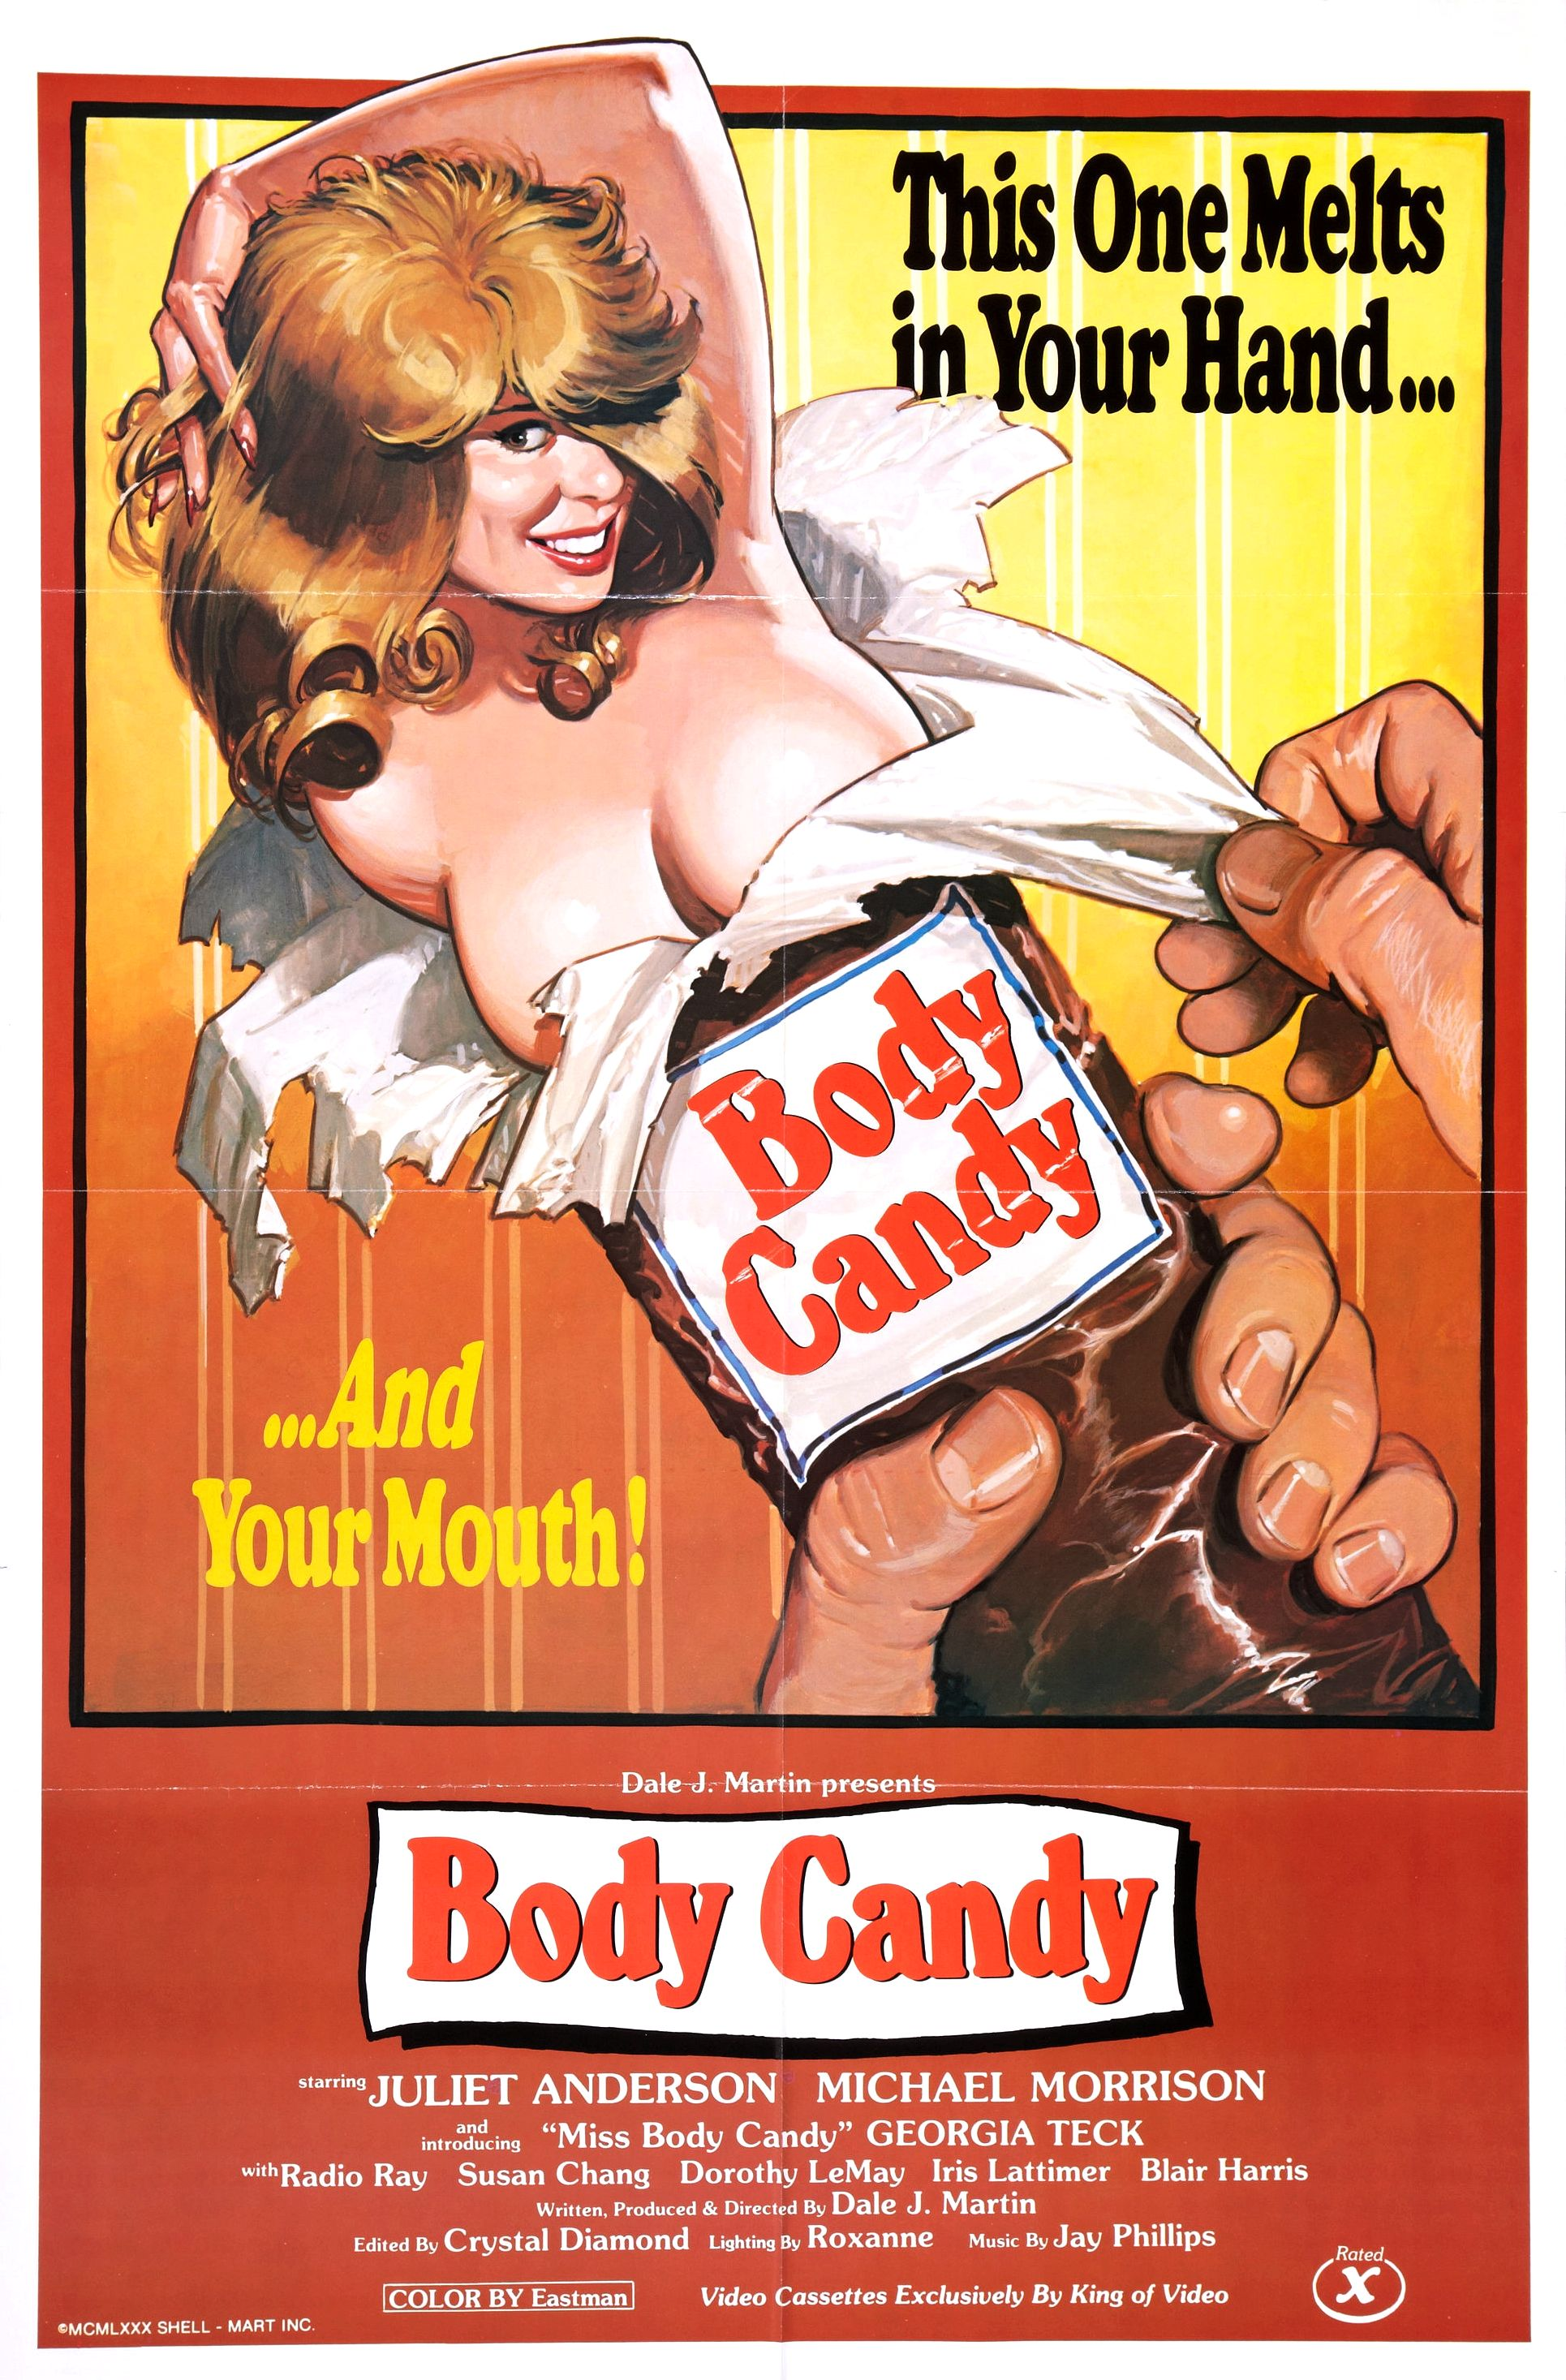 Vintage Adult Film Posters - Gallery | eBaum's World